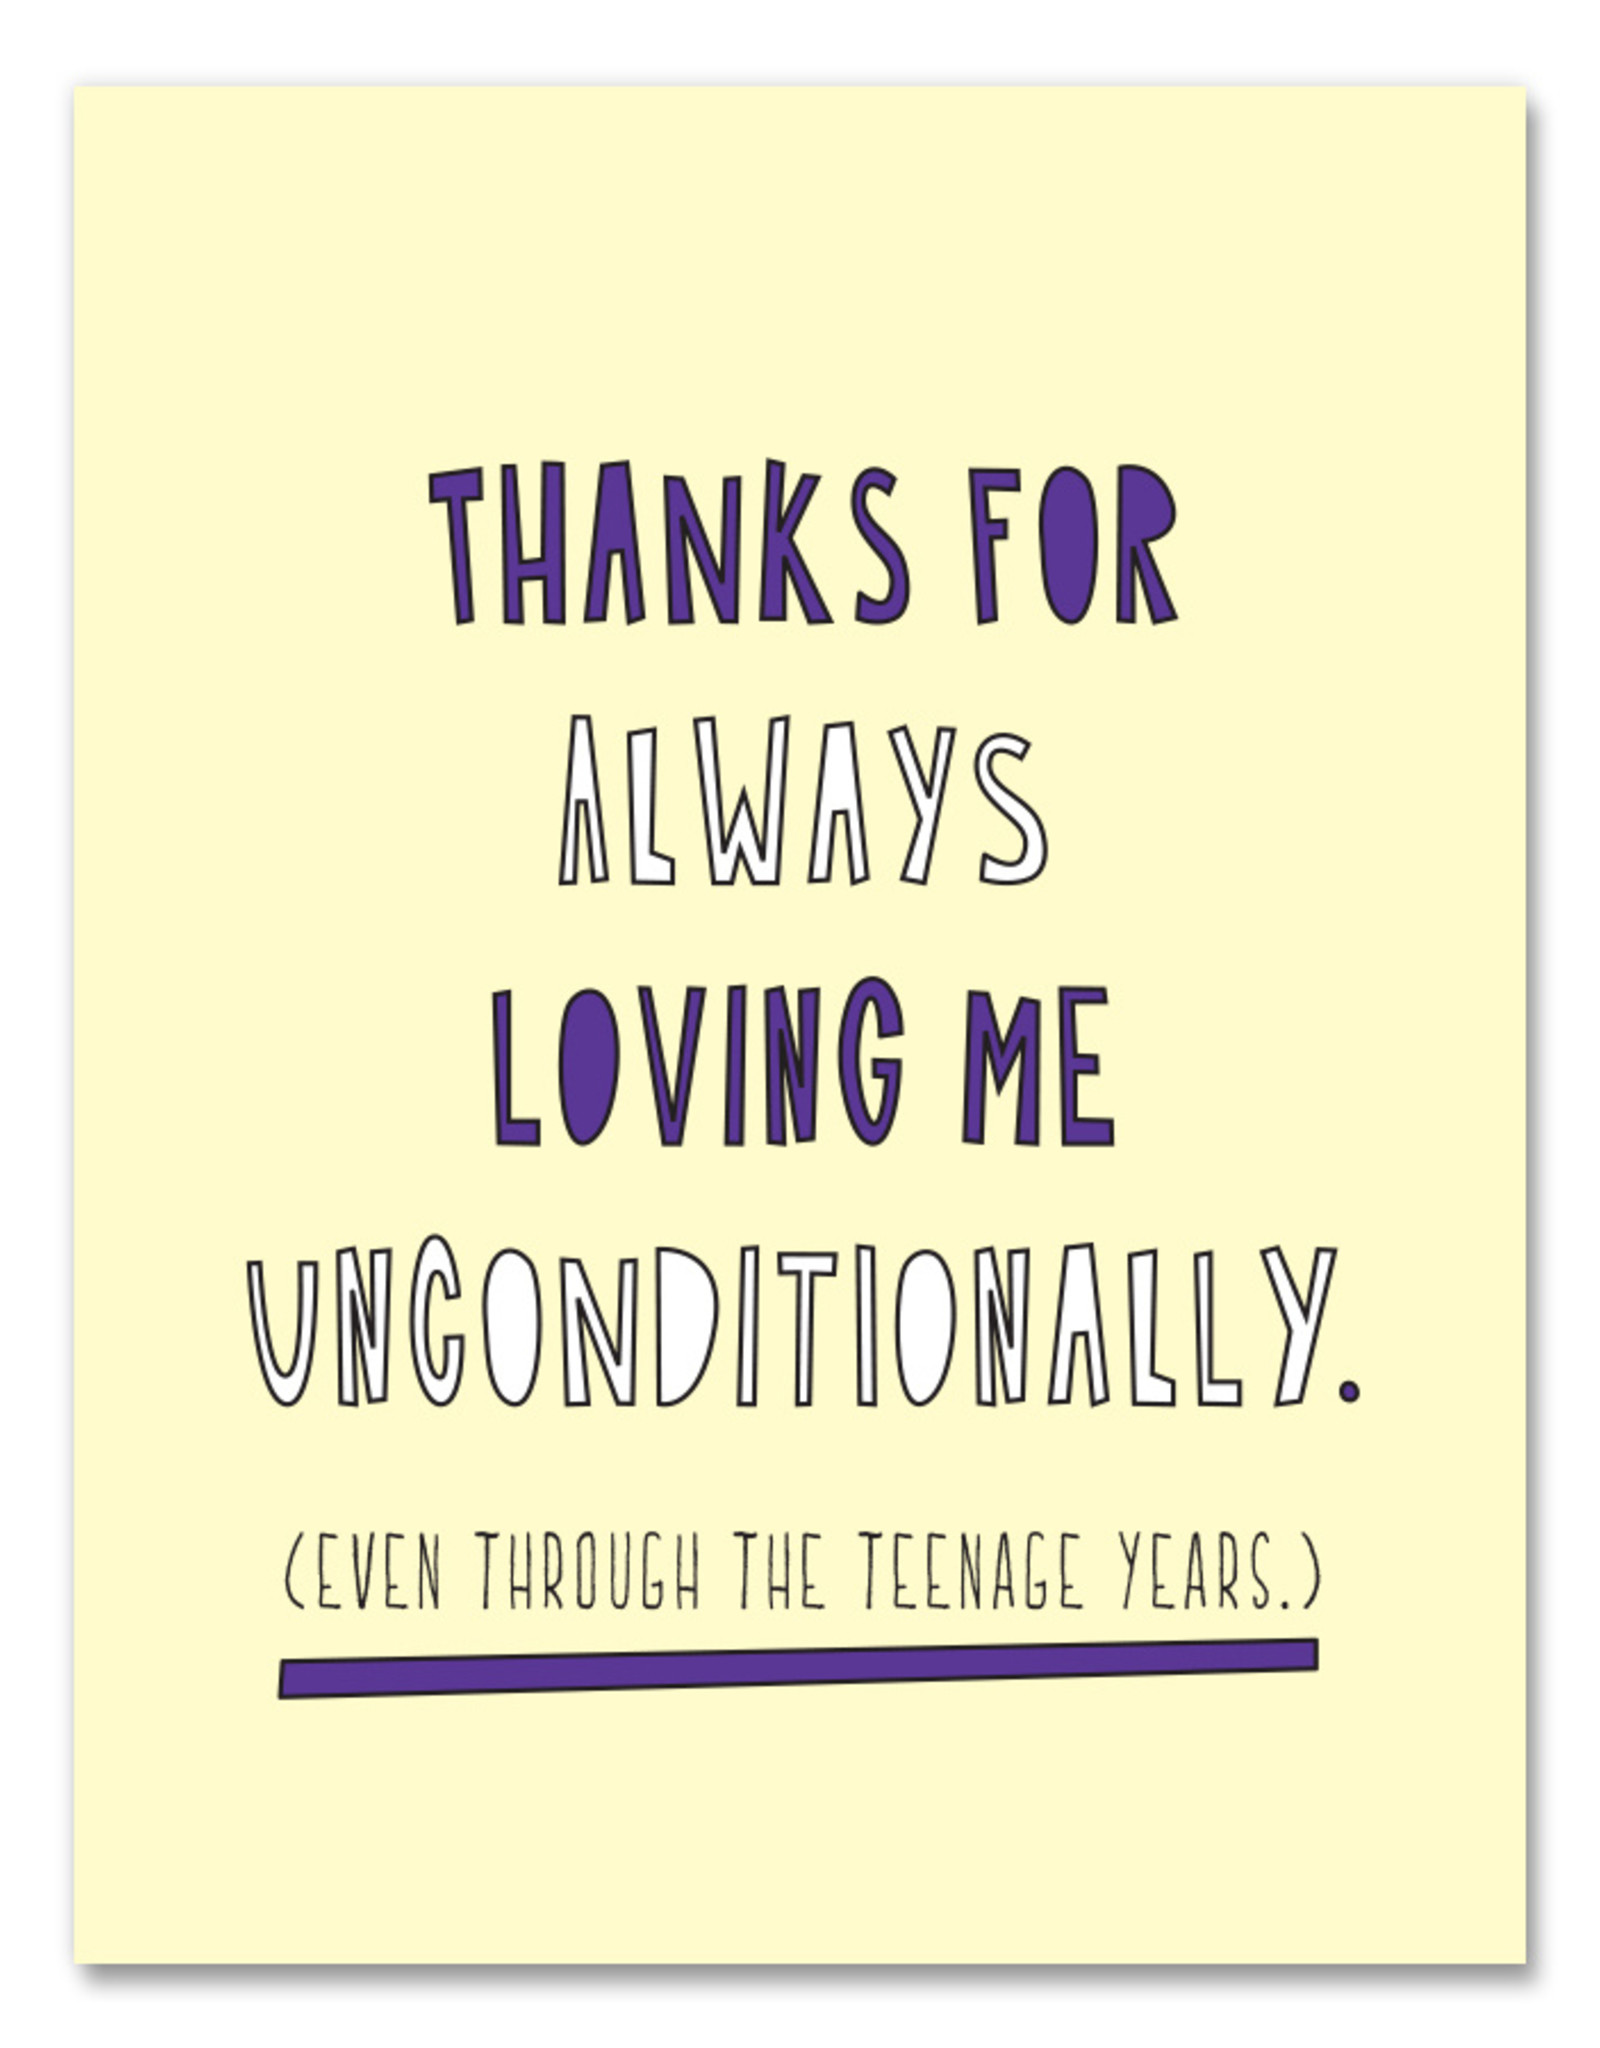 Near Modern Disaster Card - Mom/Dad: Loving me unconditionally